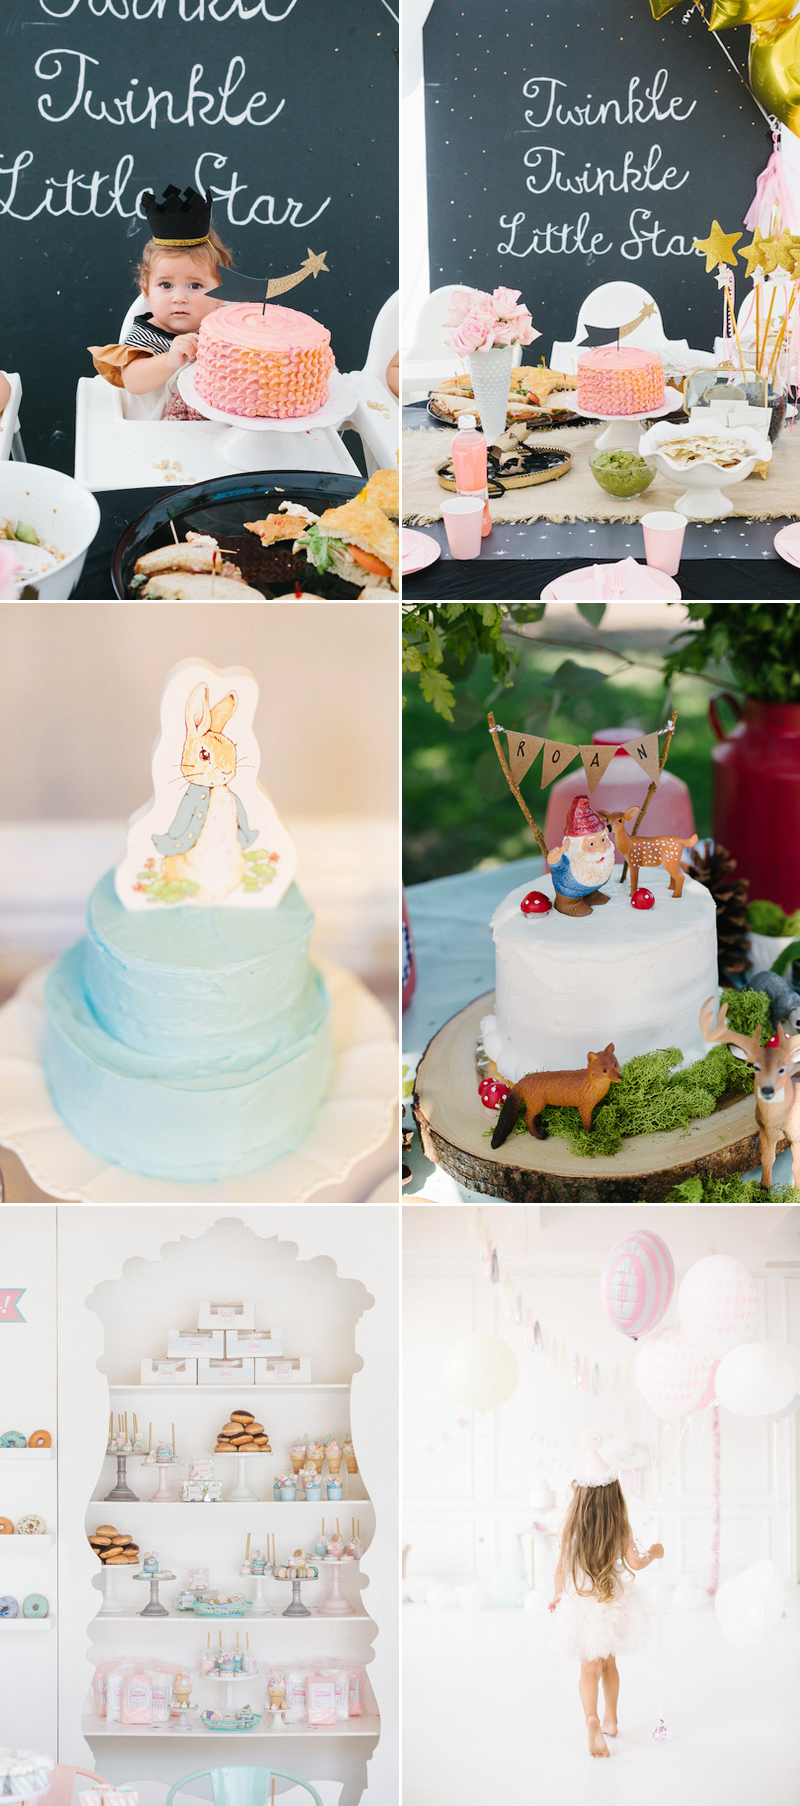 kidpartytheme03-fairytale